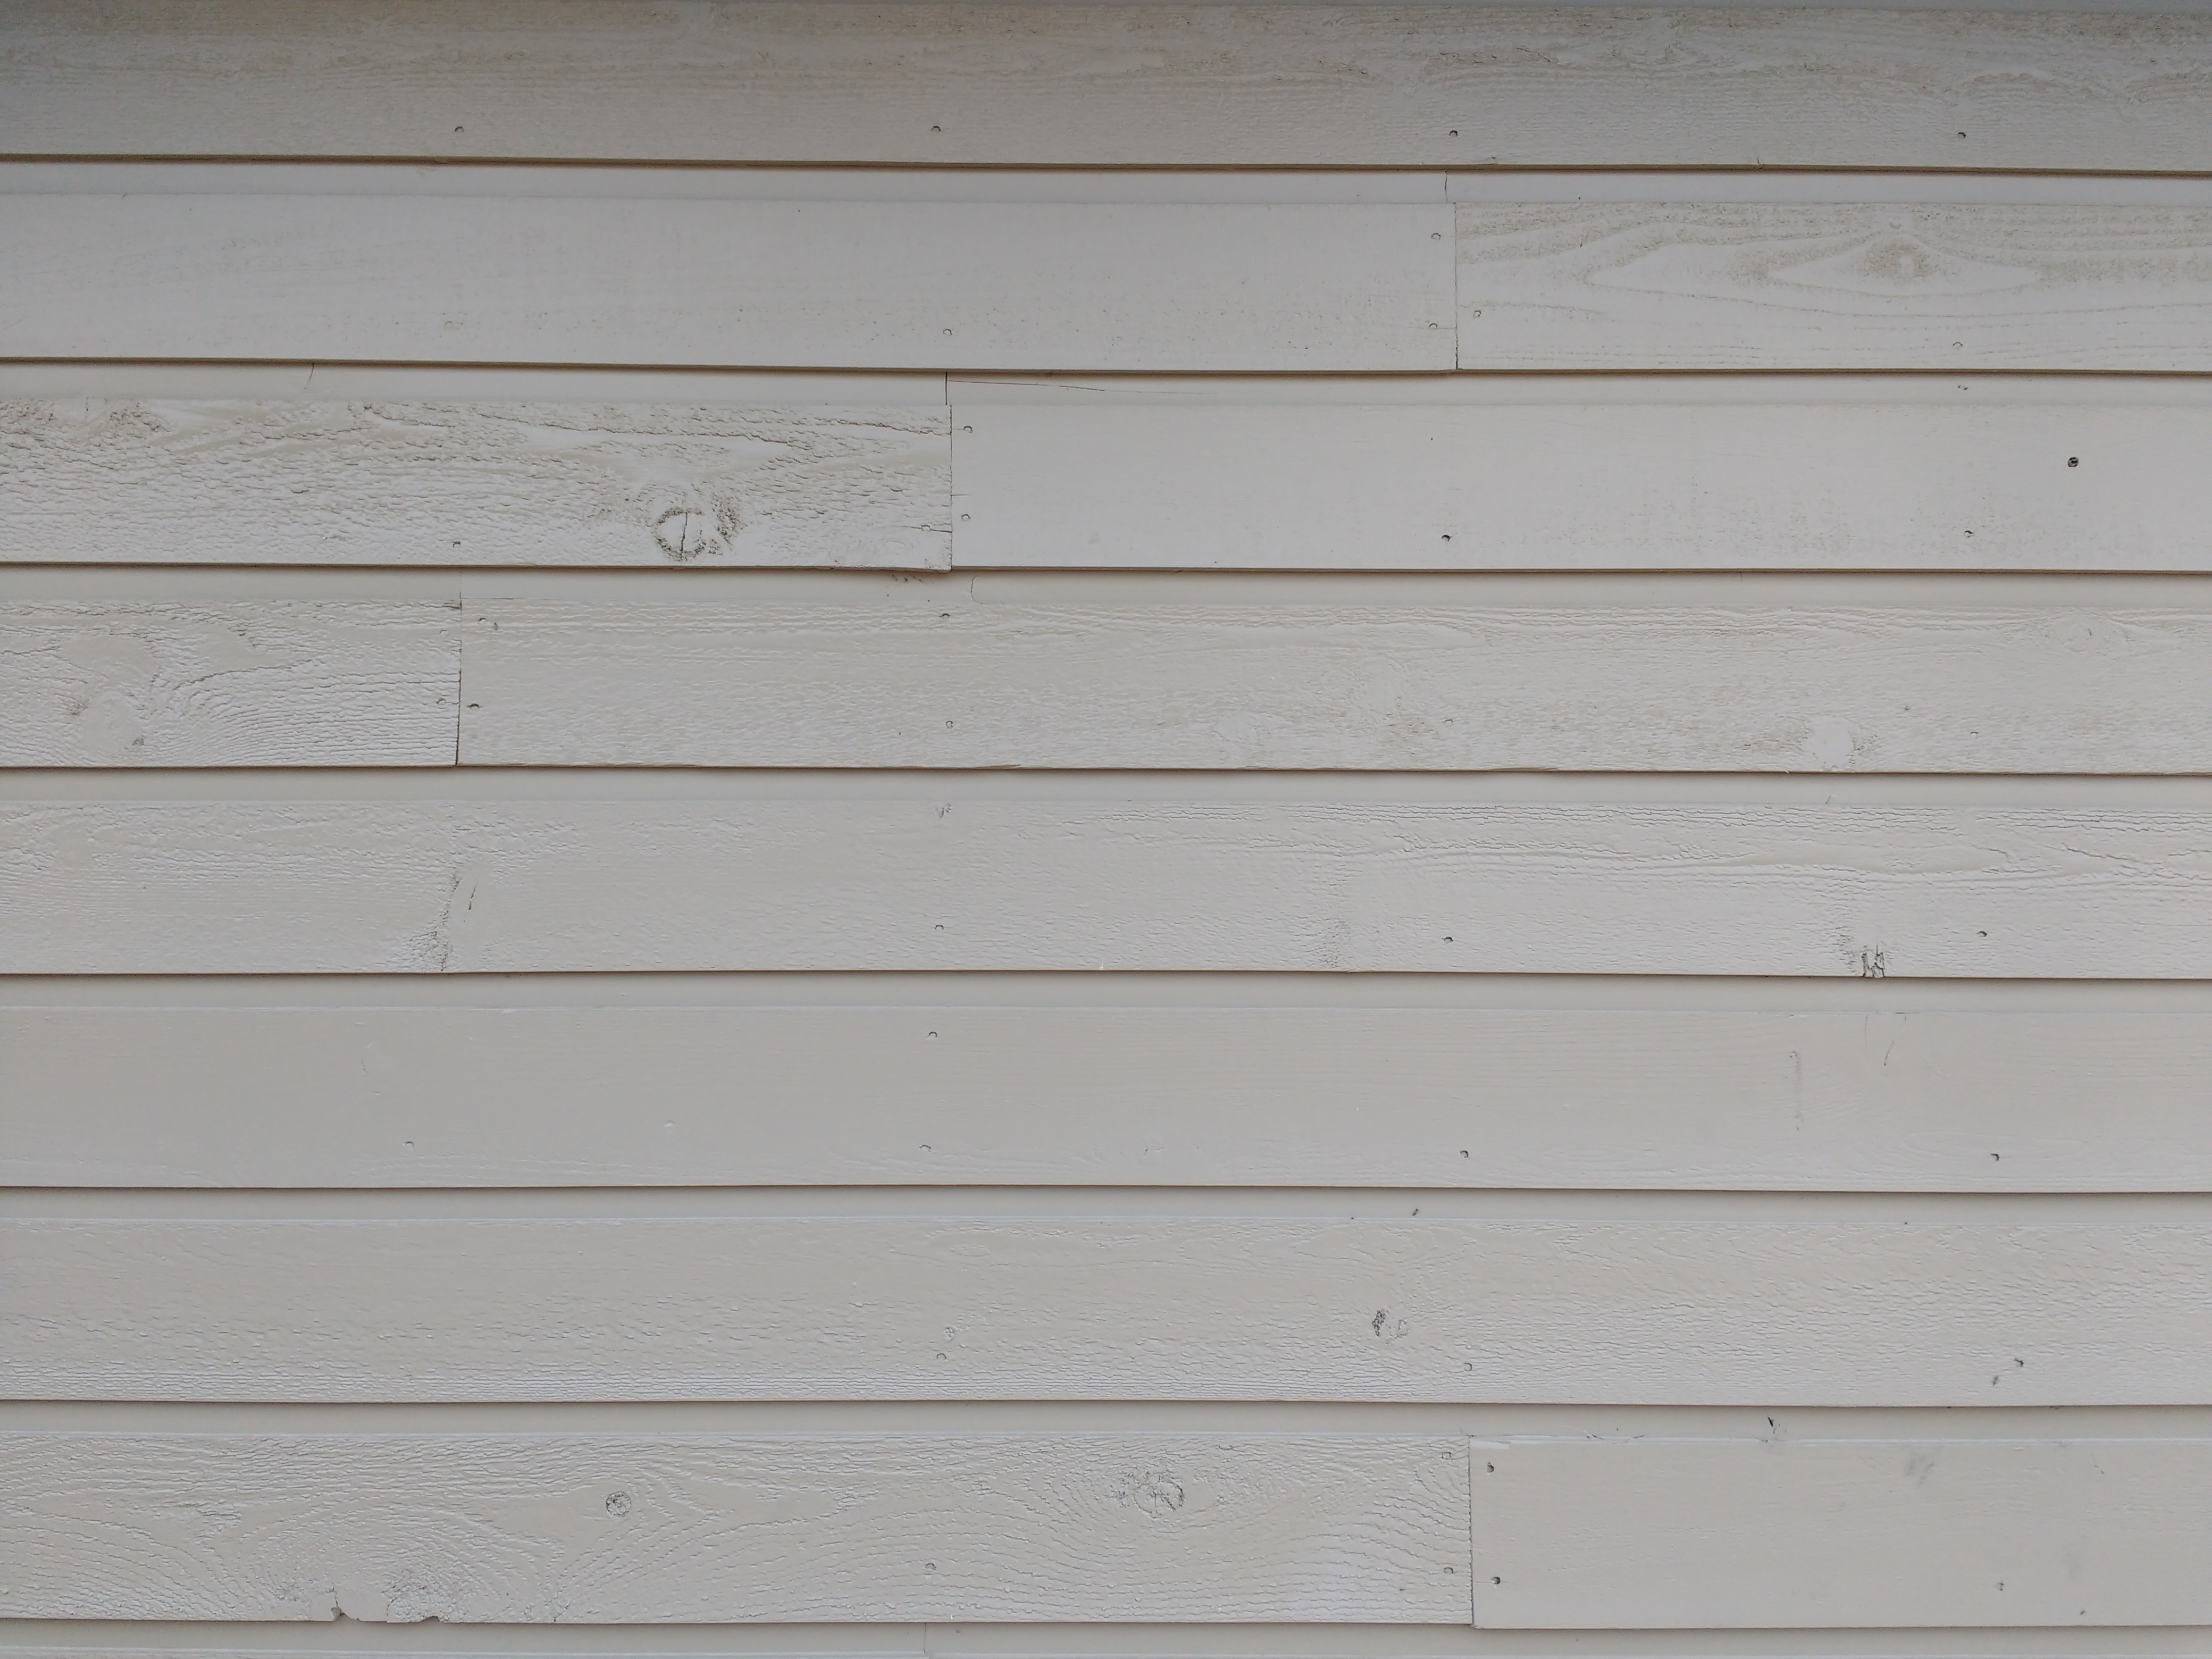 Gray Drop Channel Wood Siding Texture Picture Free